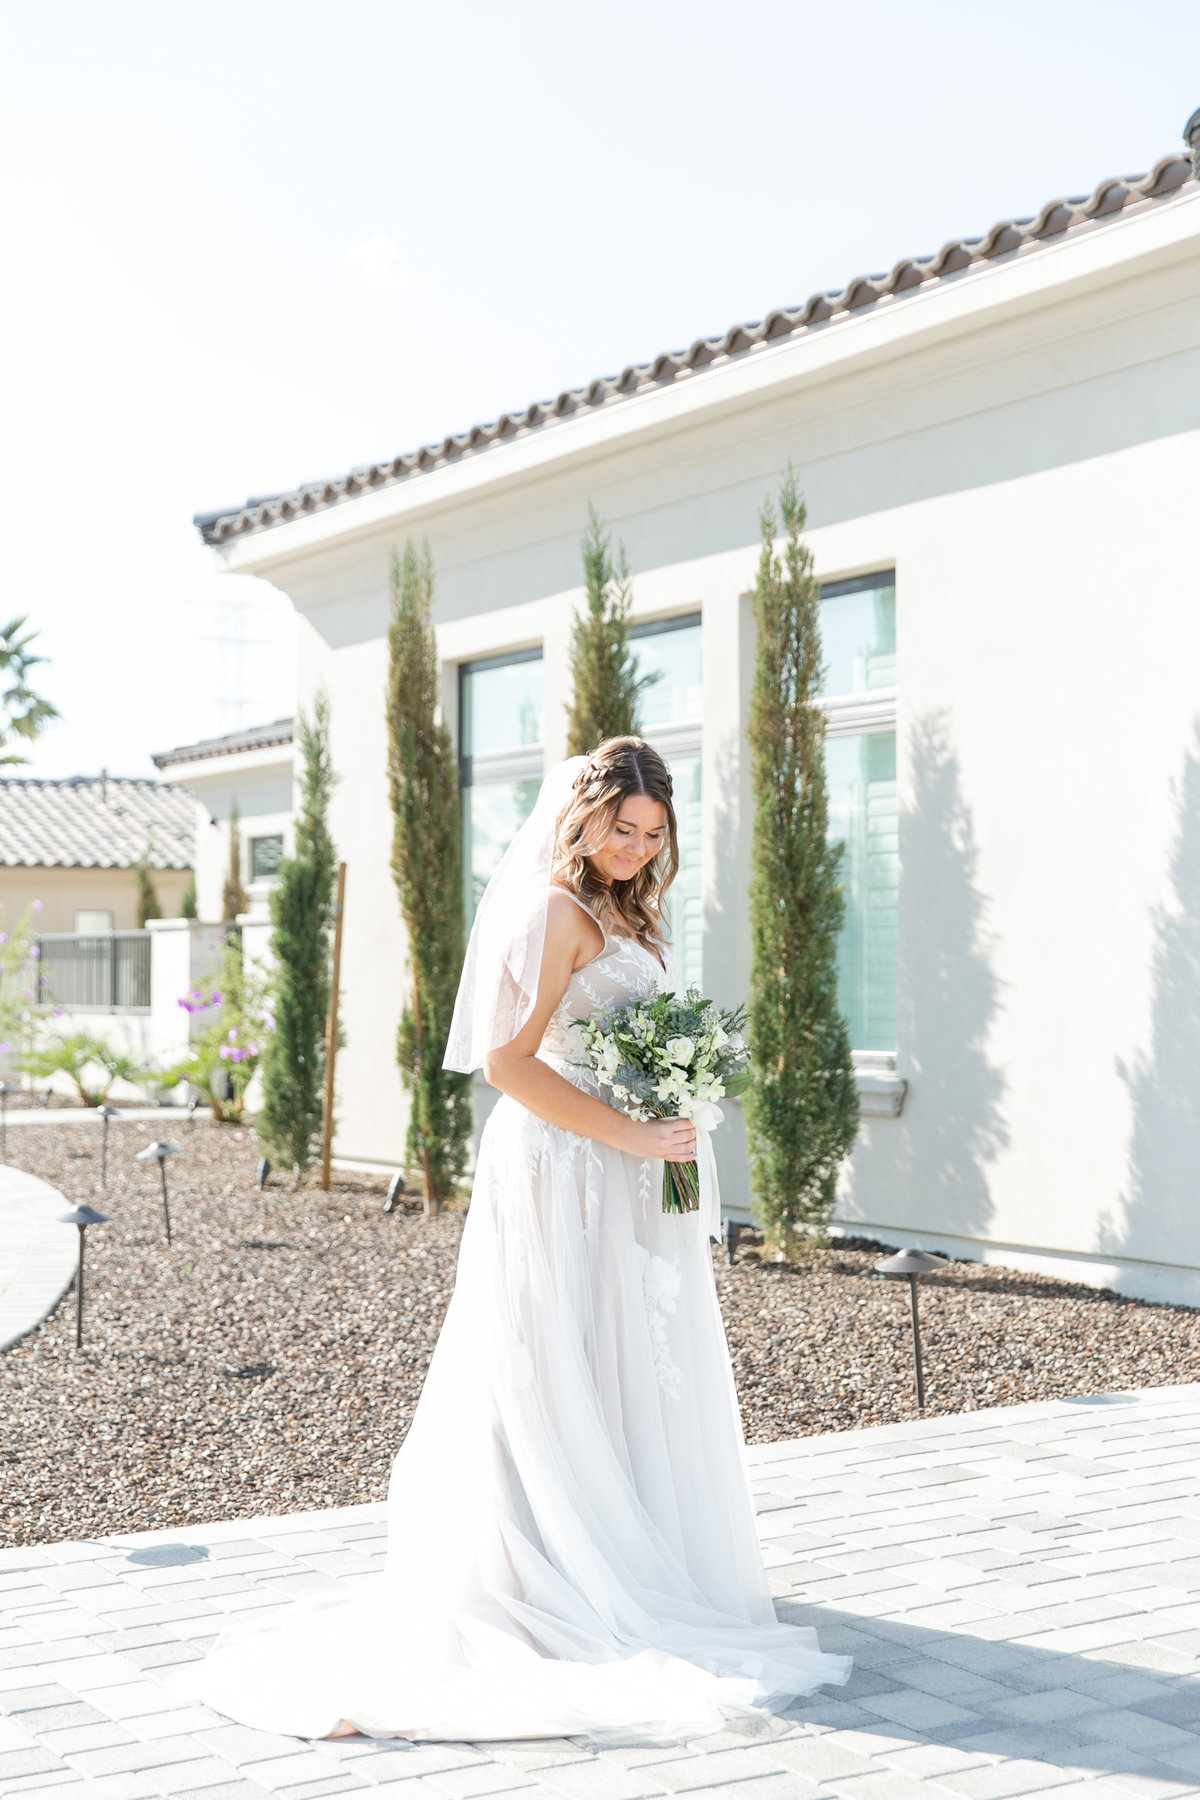 Karlie Colleen Photography - Arizona Backyard wedding - Brittney & Josh-96